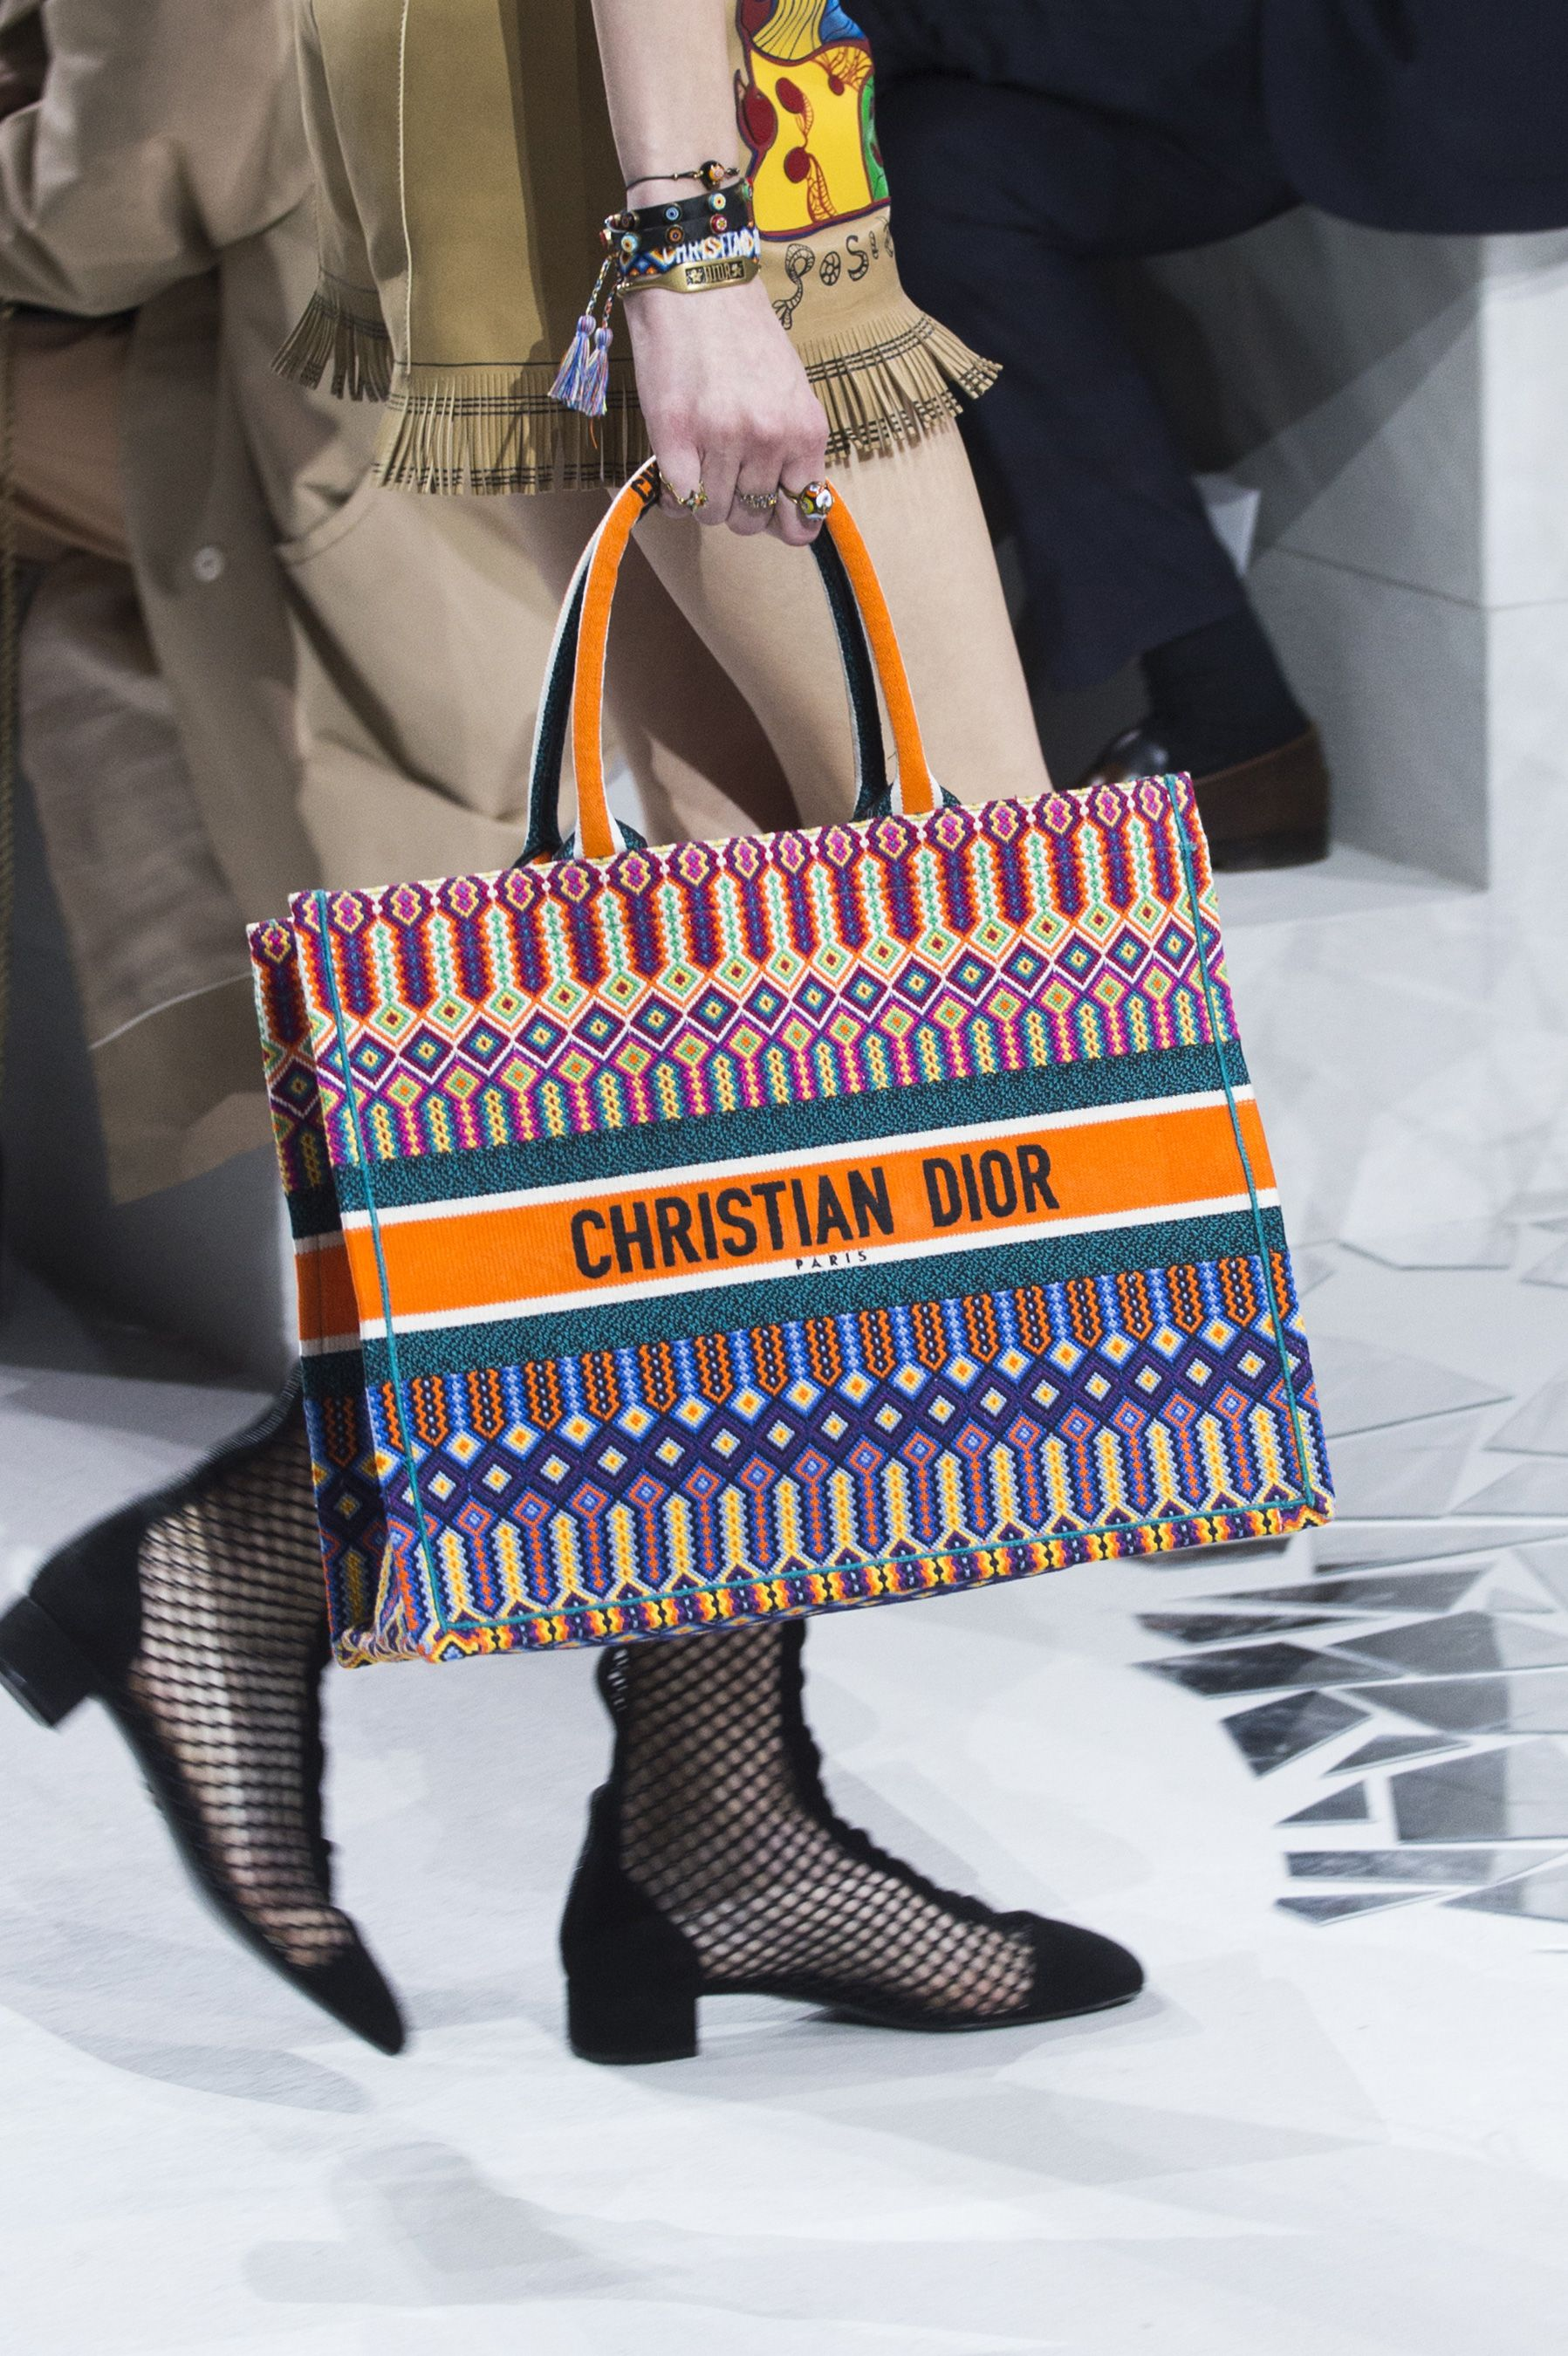 Christian Dior Spring 2018 Fashion Show Details - The Impression ... 8de76eda212